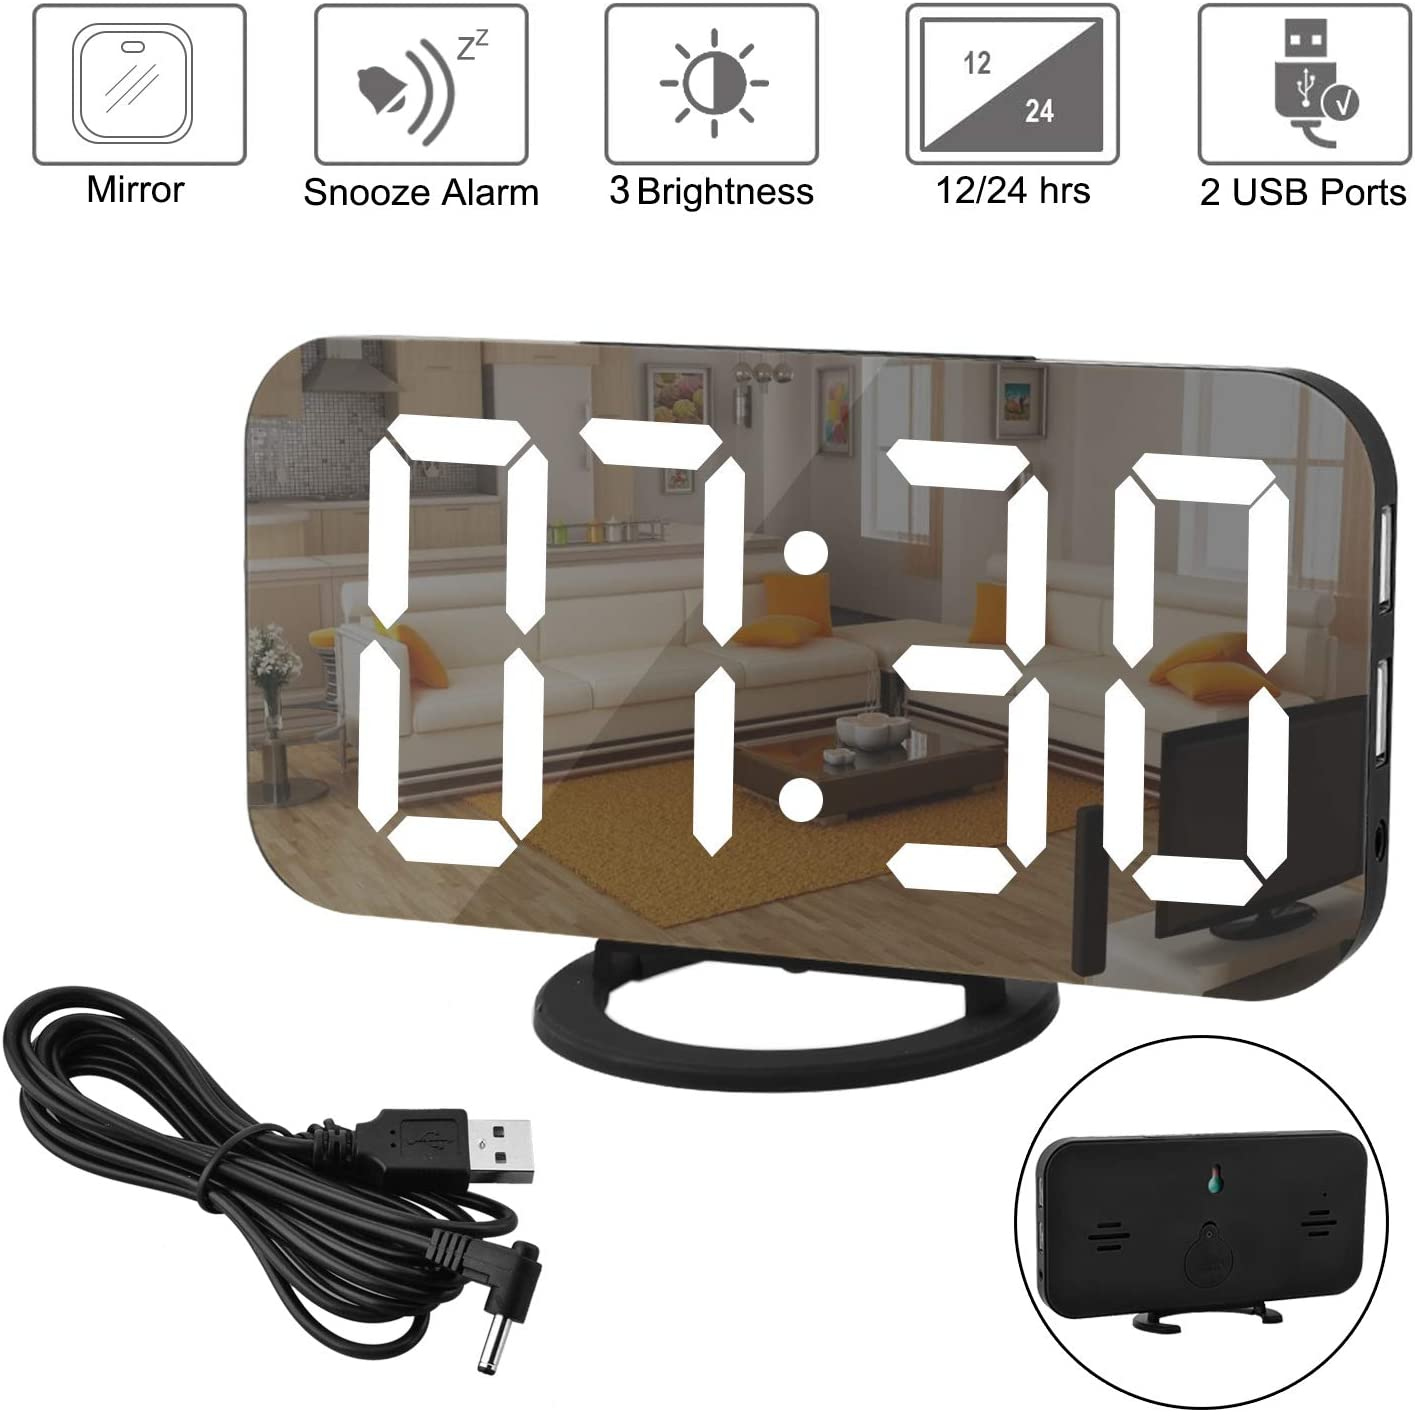 Digital Clock Large Display, LED Alarm Electric Clock Mirror Surface for Makeup with Diming Mode, 3 Levels Brightness, Dual USB Ports Modern Decoration for Home Bedroom Decor-Black